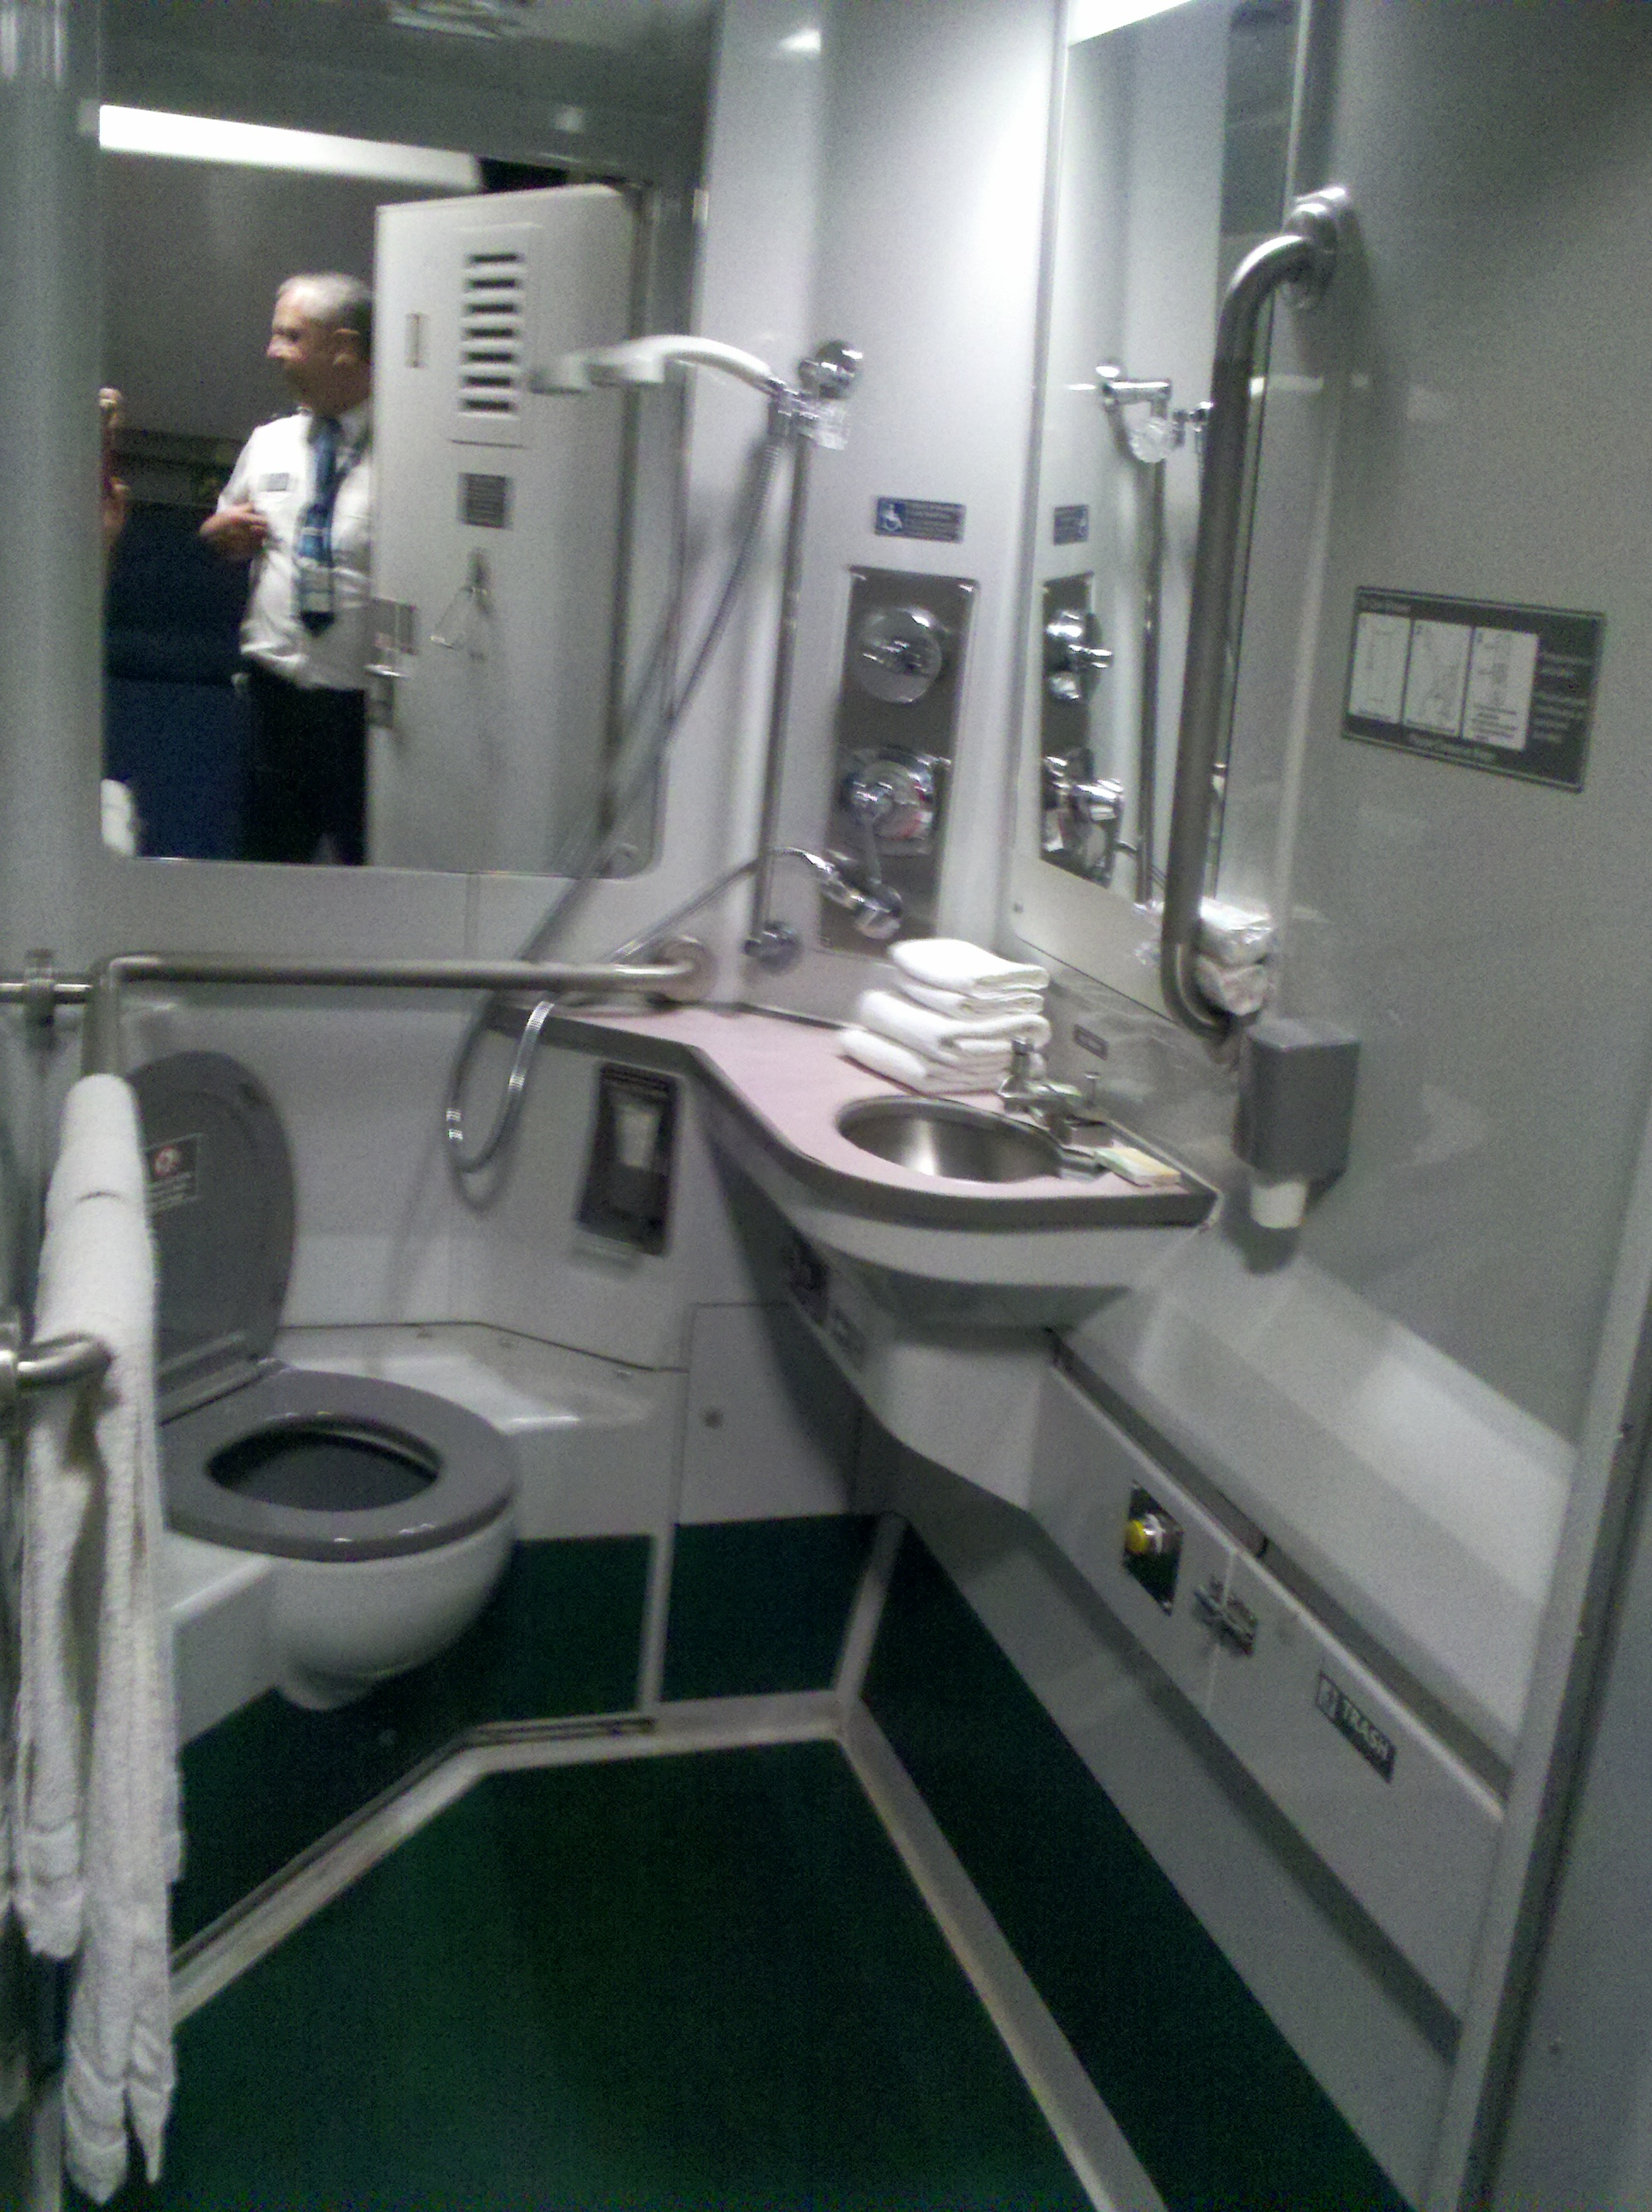 Amtrak Can You Use Showers In Sleeper Cars